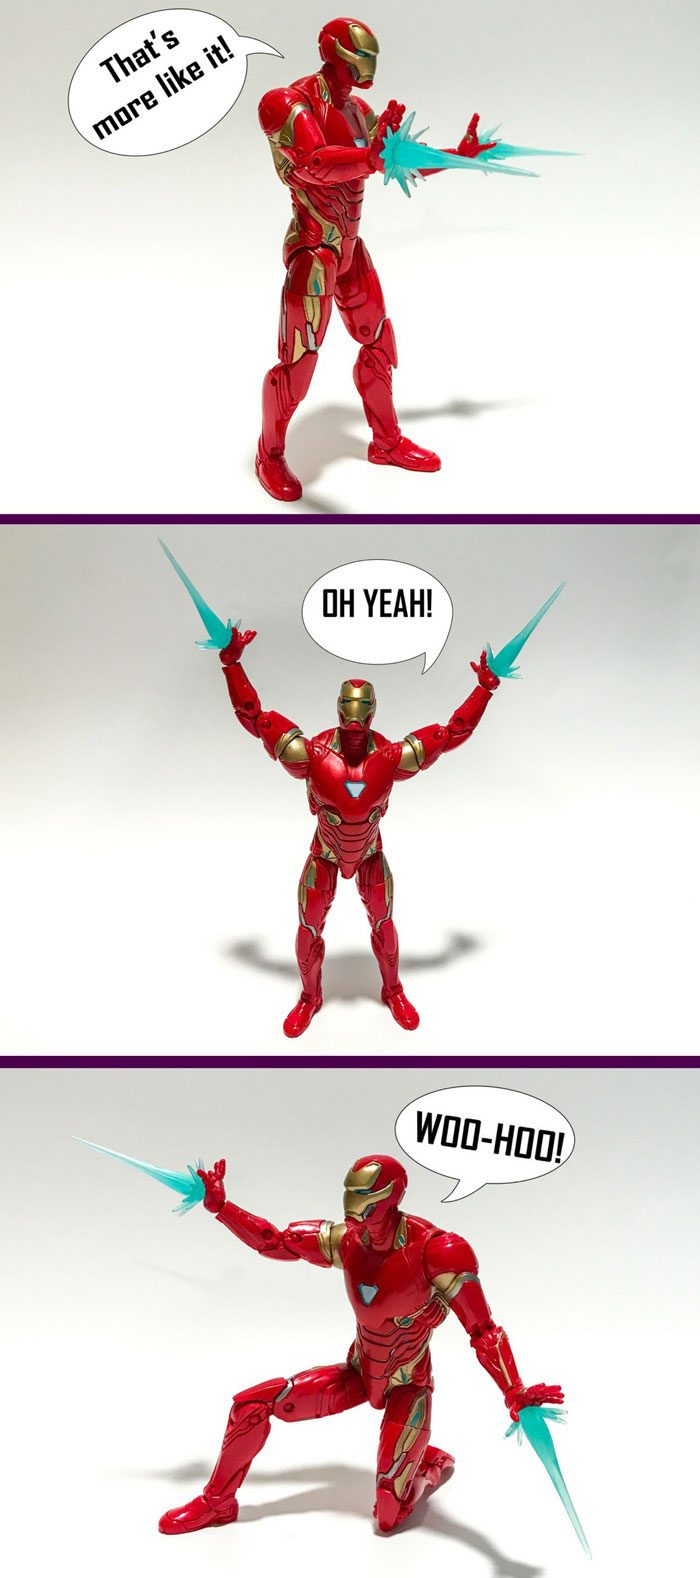 Image of Iron Man action figure with blast effects.